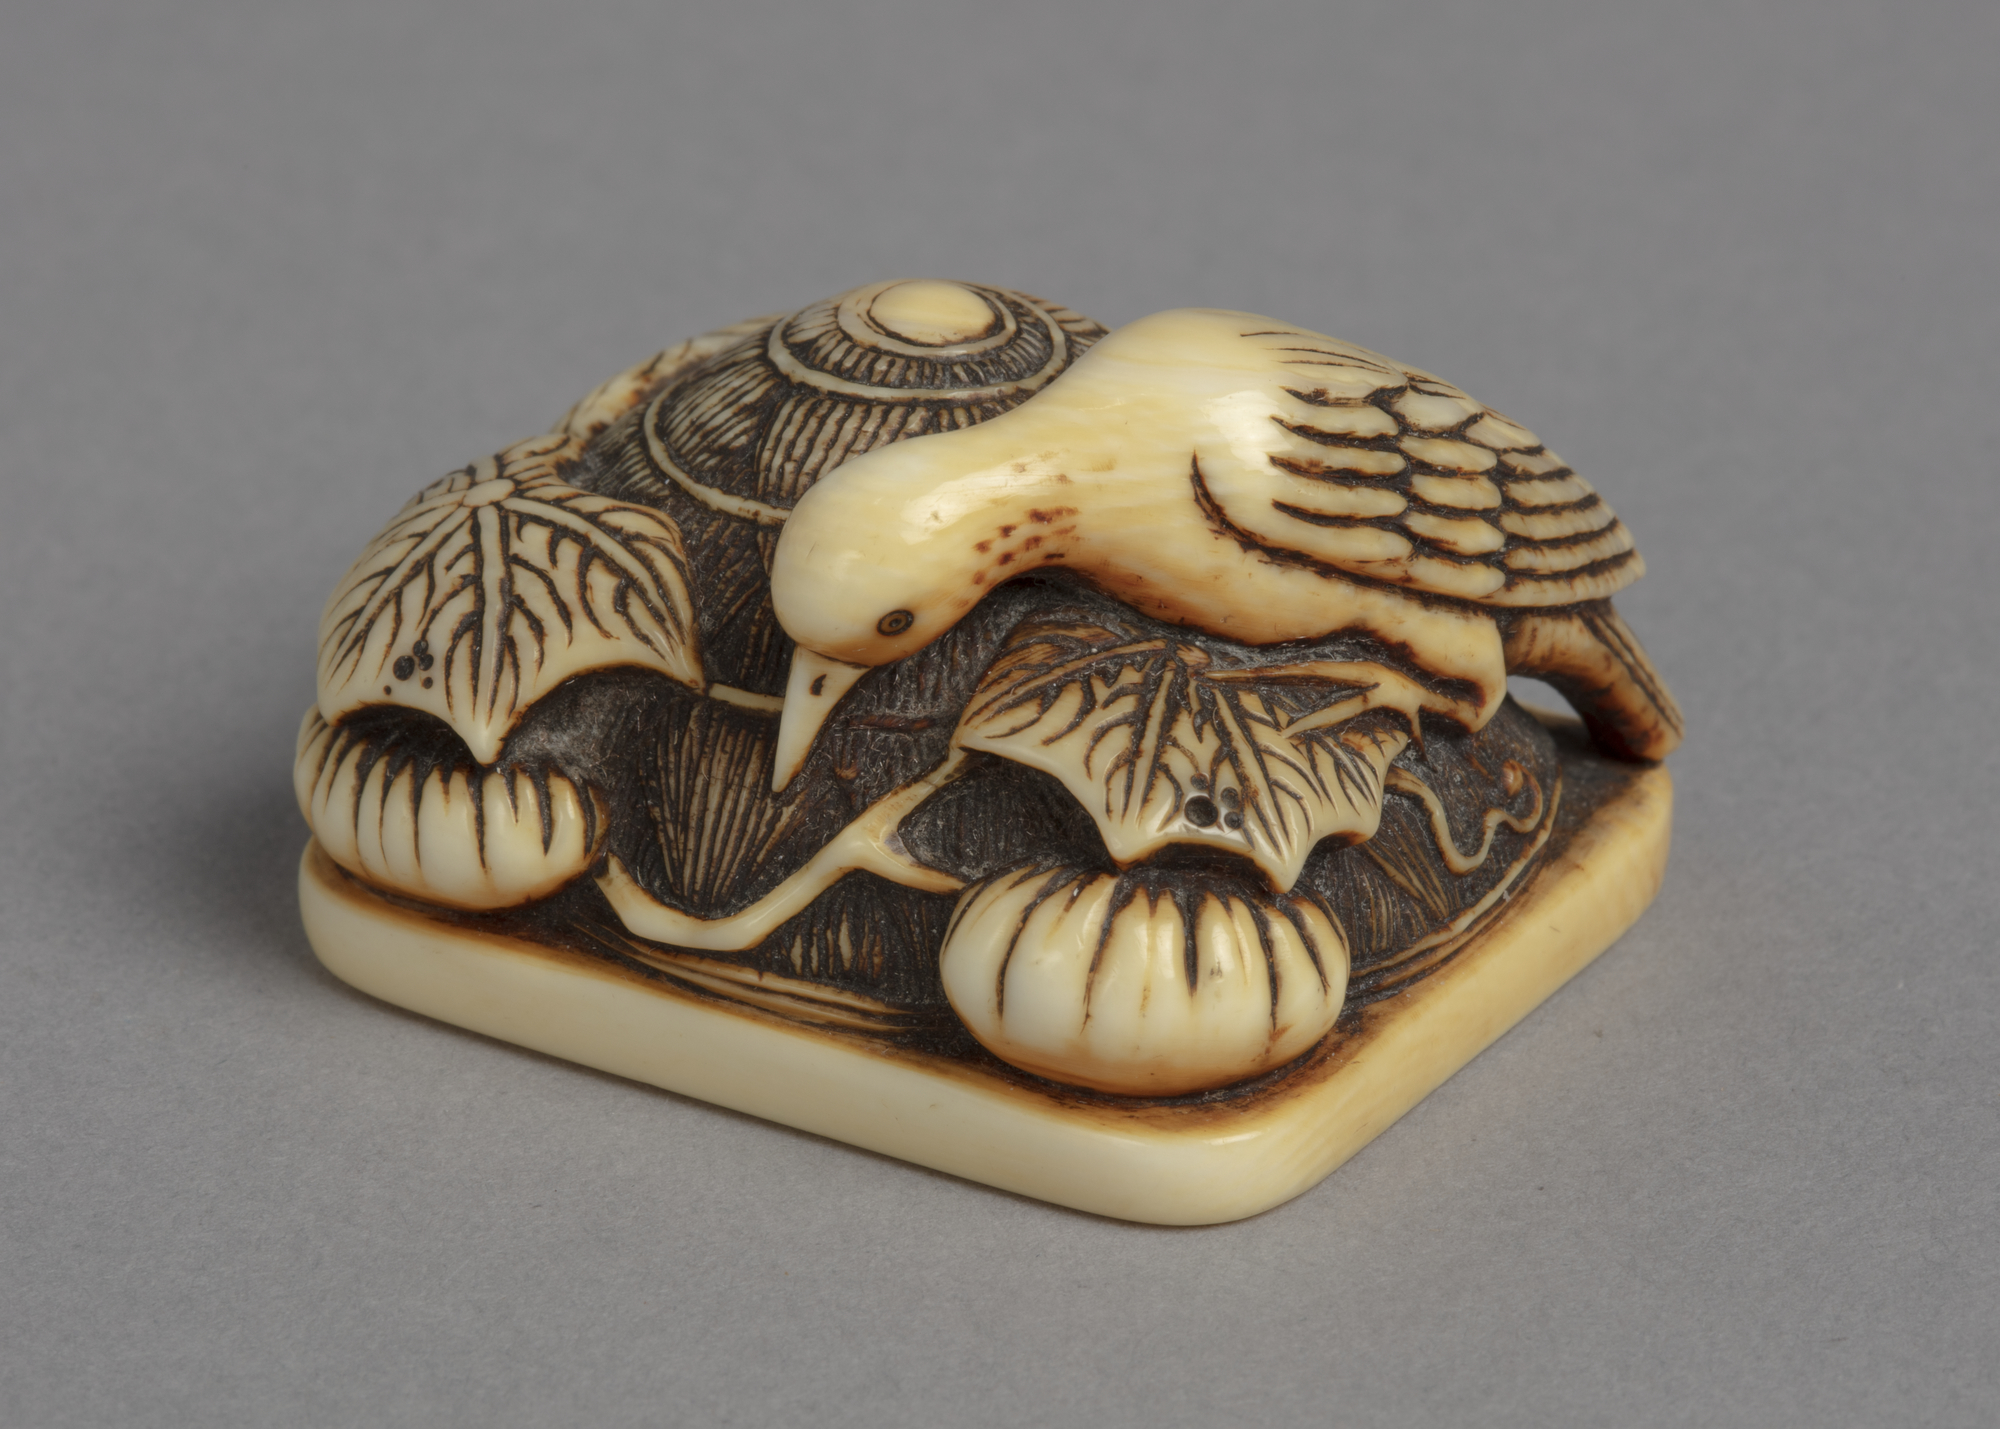 A Japanese ivory netsuke of a stork bird perched on a large straw hat discarded among pumpkins, vines and leaves.